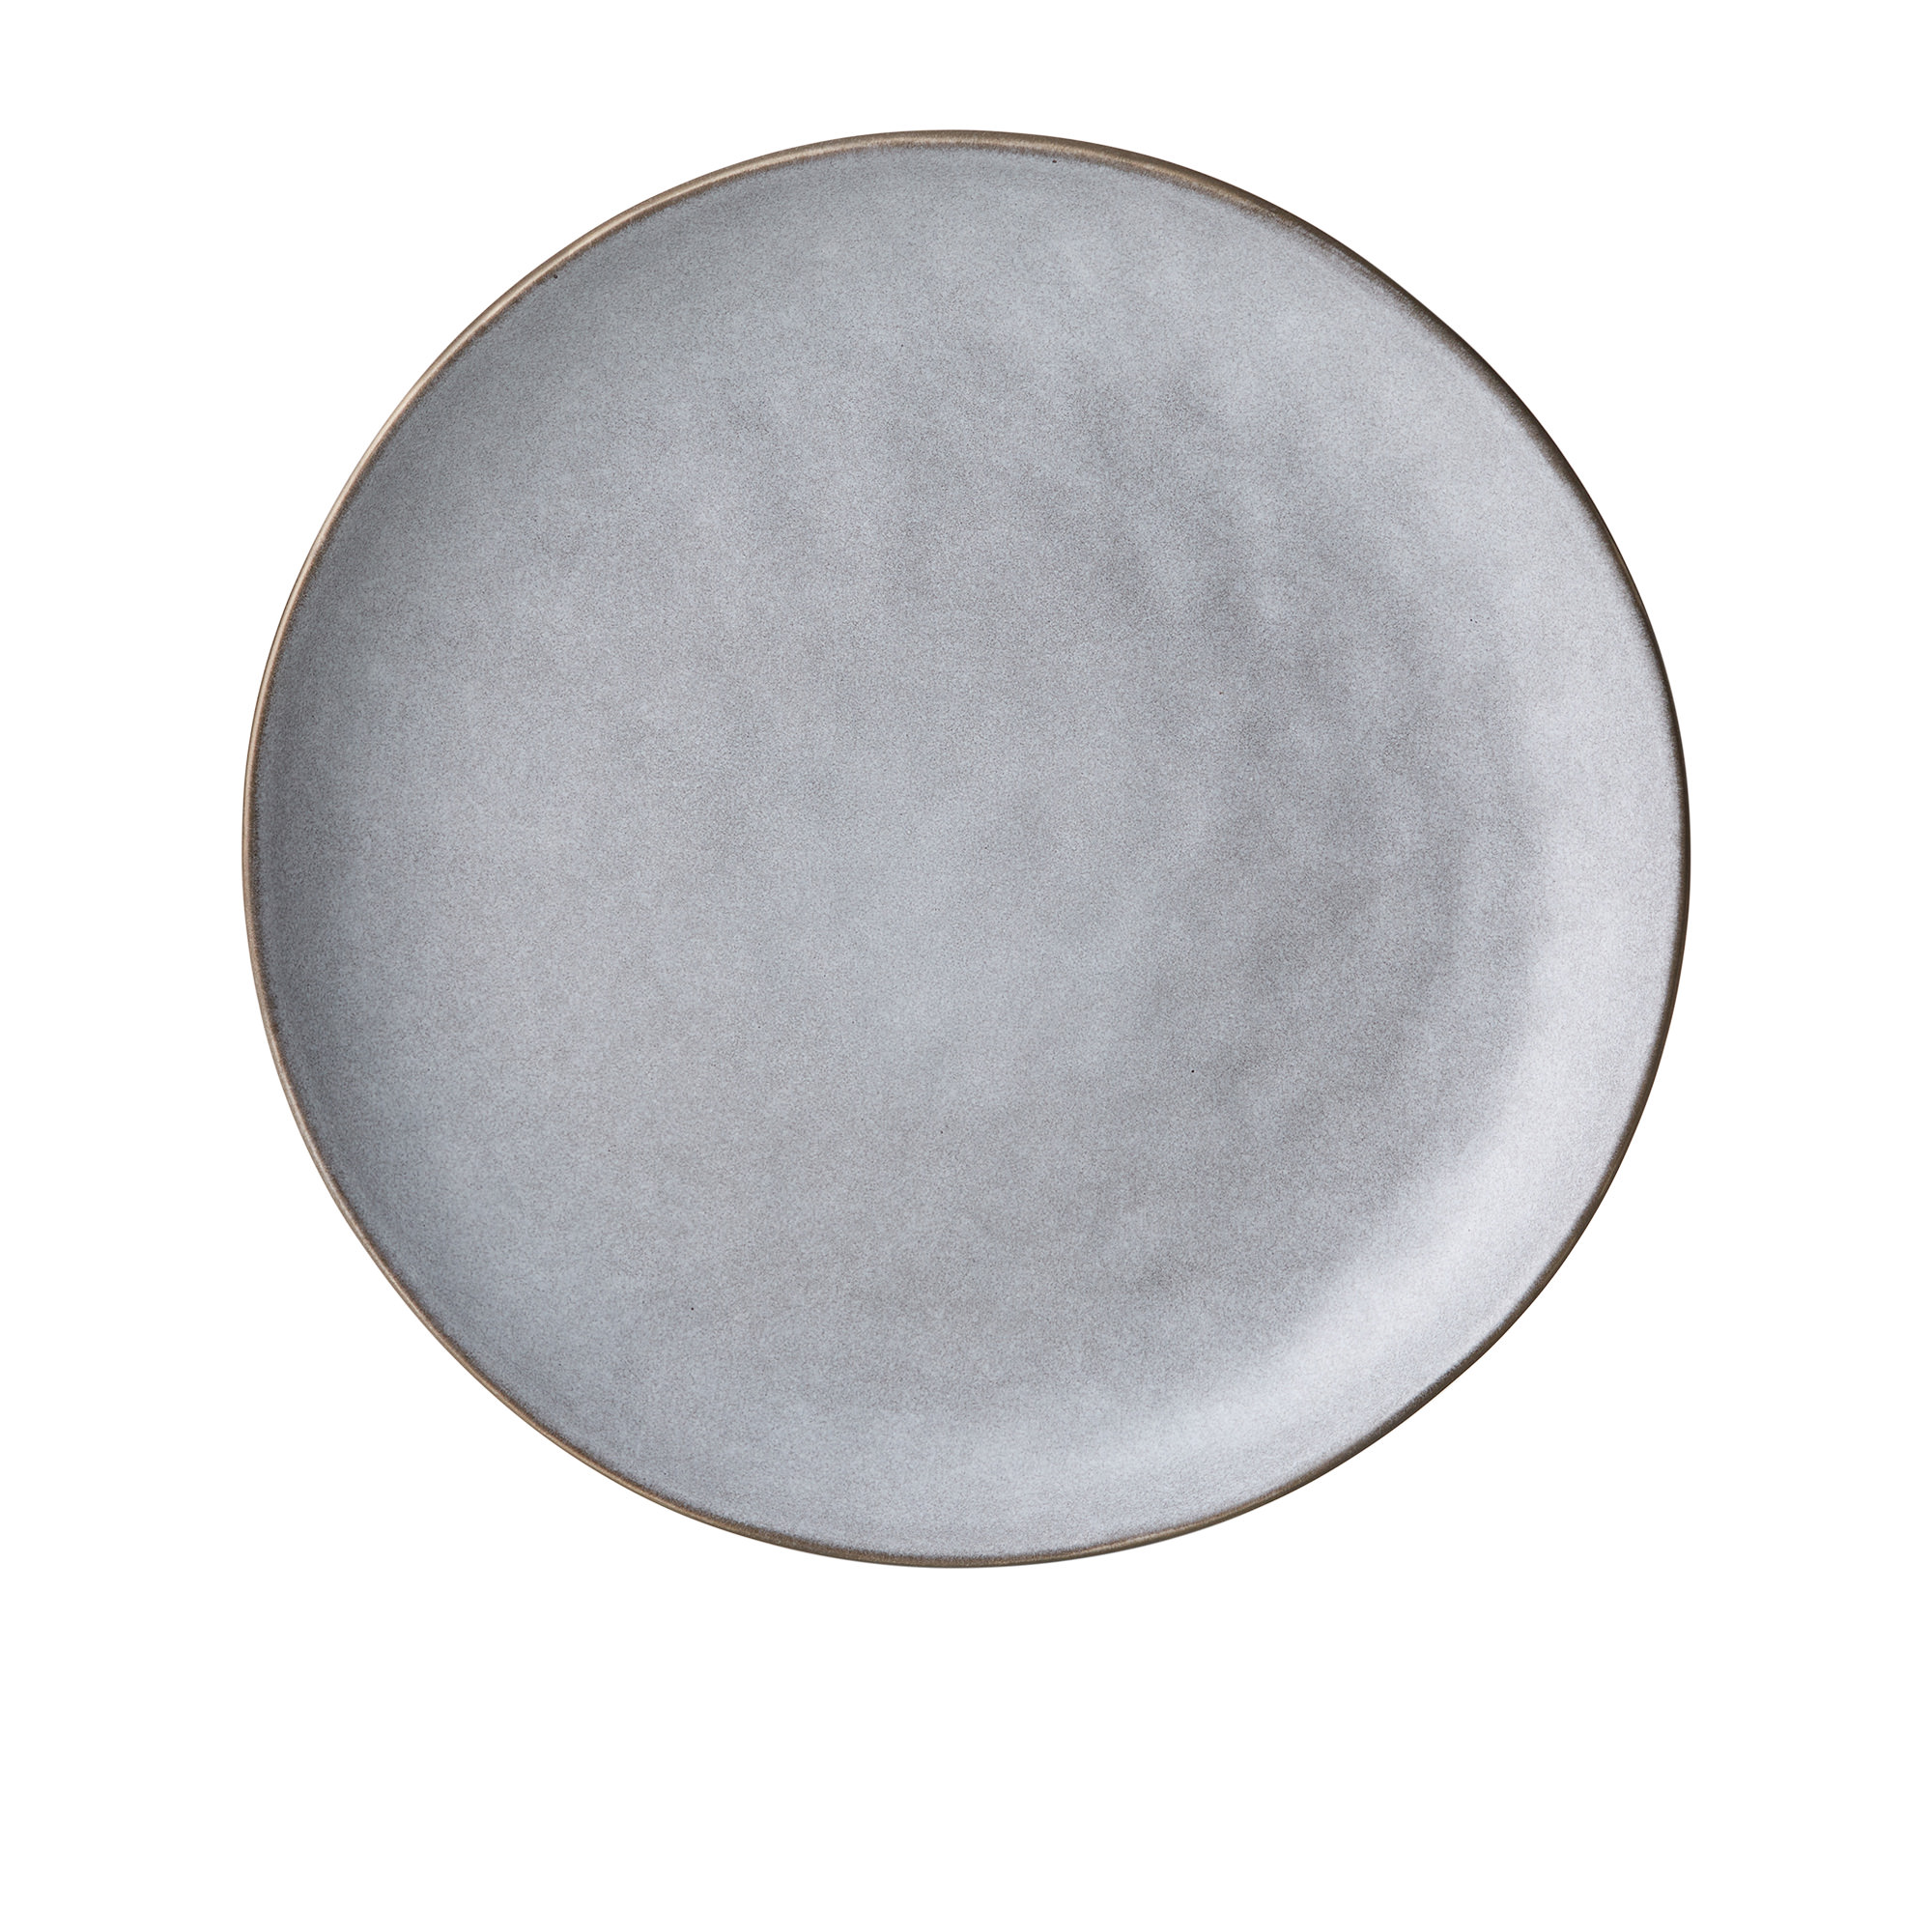 Salisbury & Co Siena Round Platter 33cm Light Grey